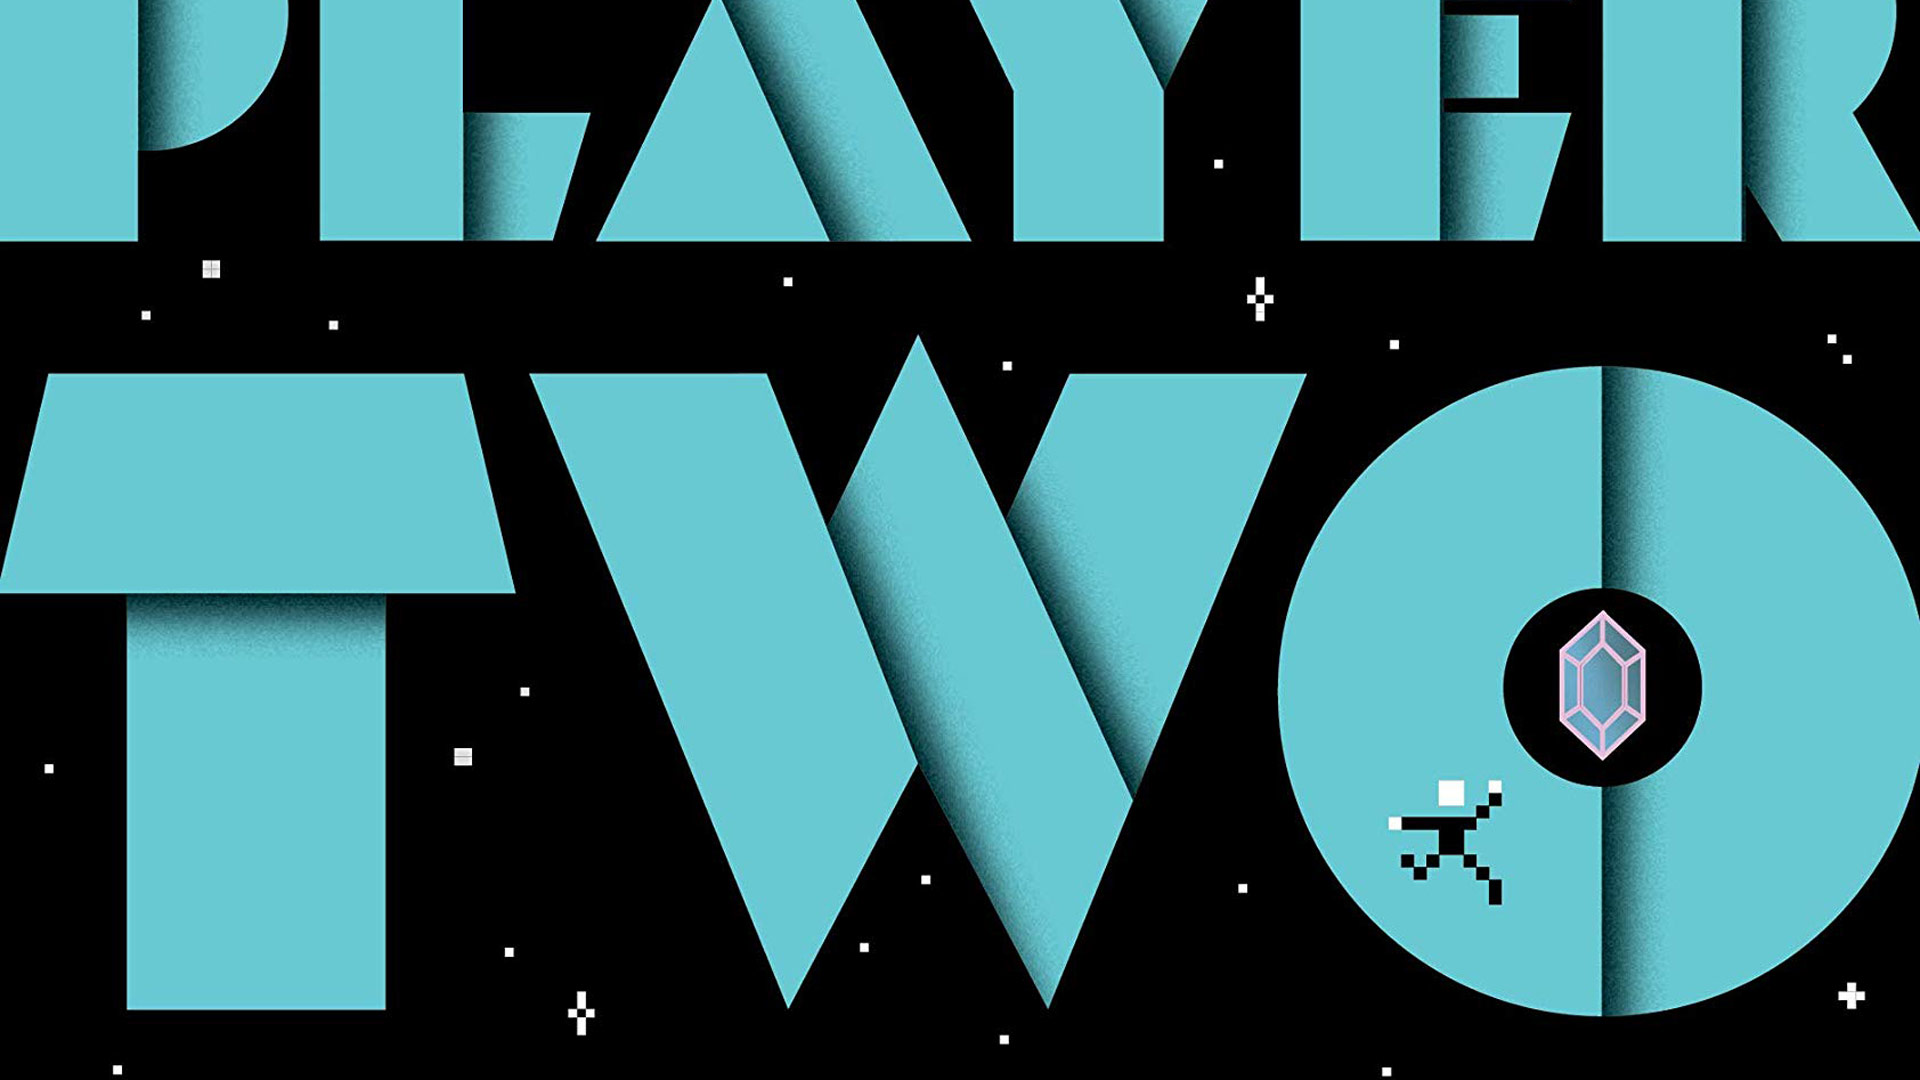 'Ready Player One' Book Sequel Coming November 24th